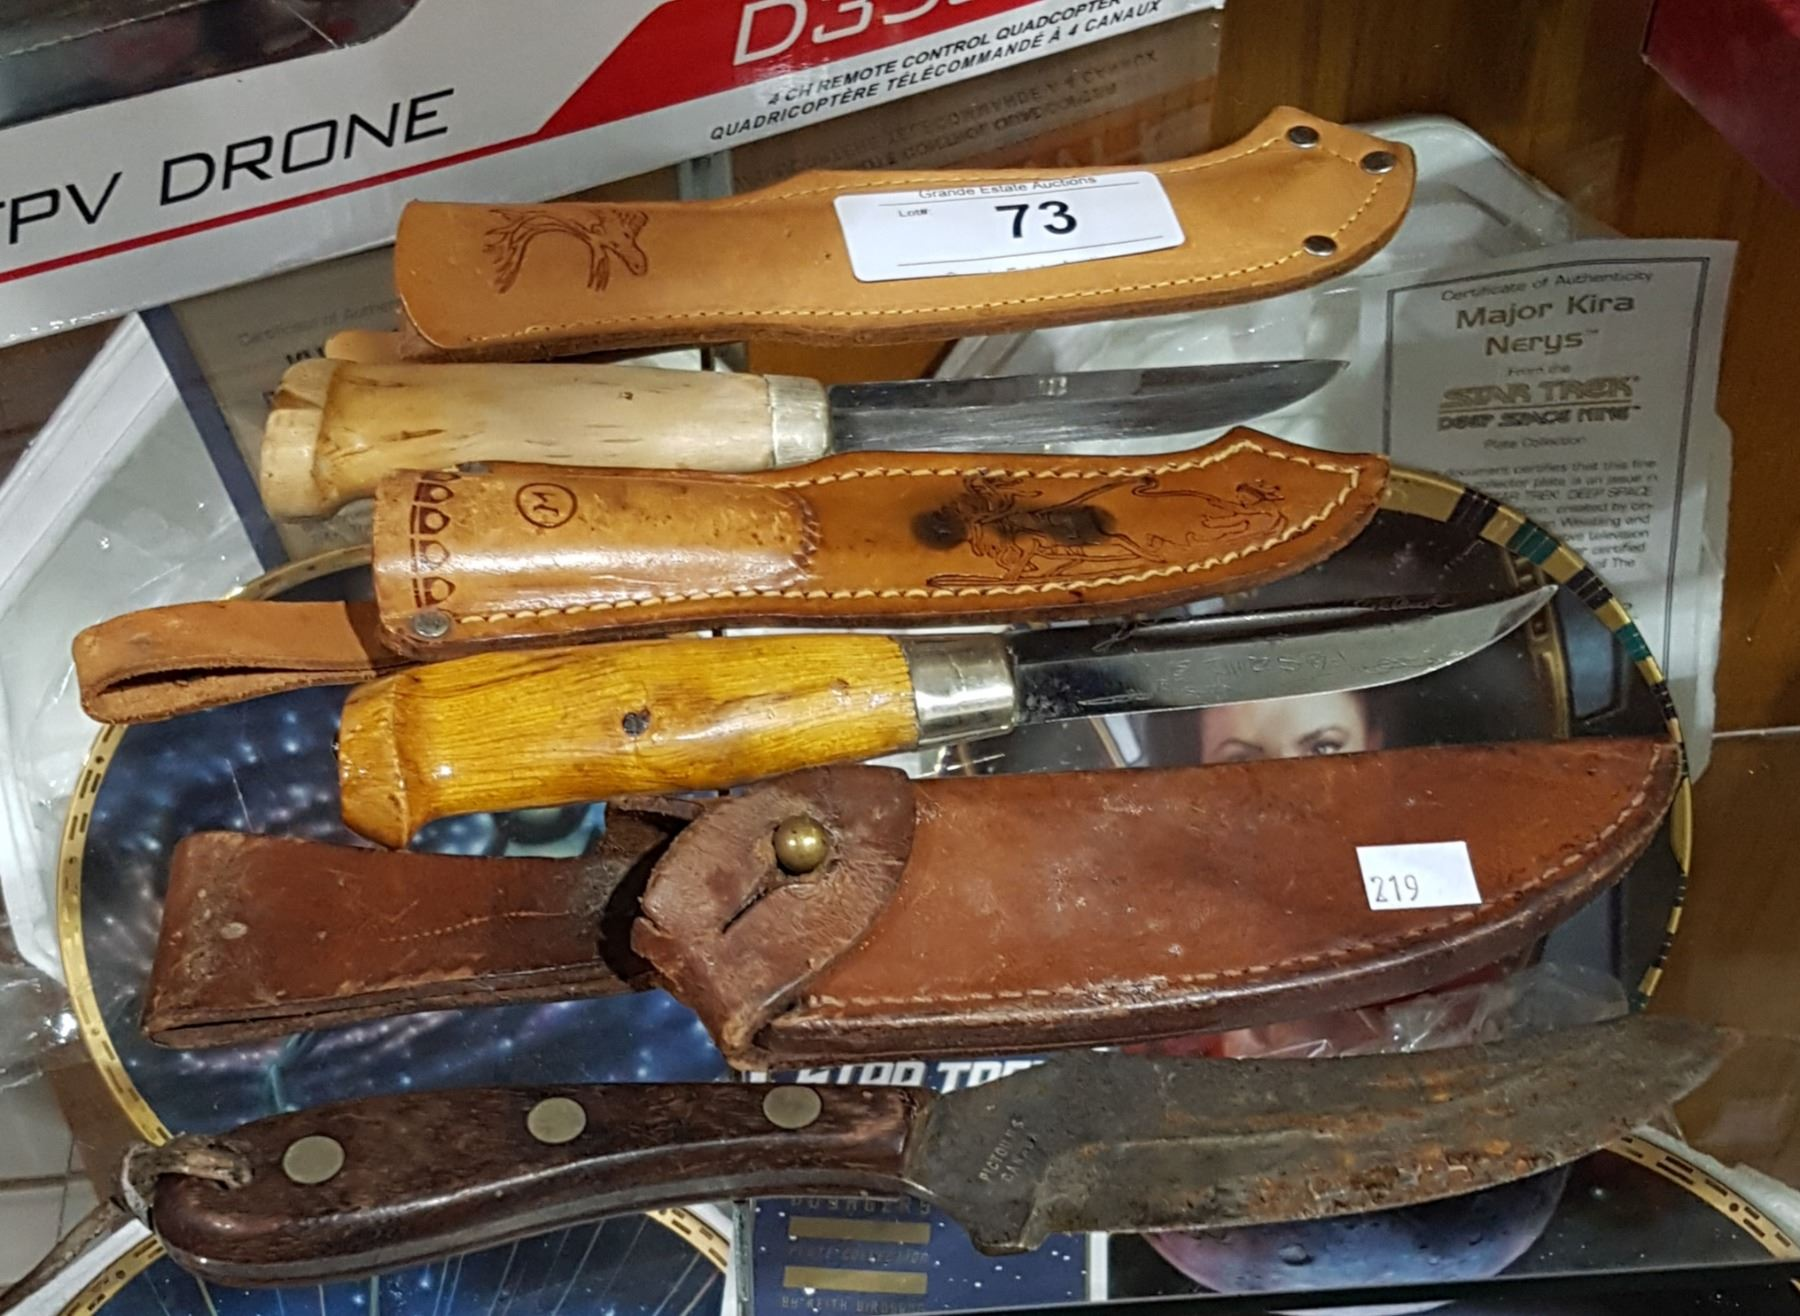 3 VINTAGE FINNISH KNIVES IN LEATHER SHEATHS